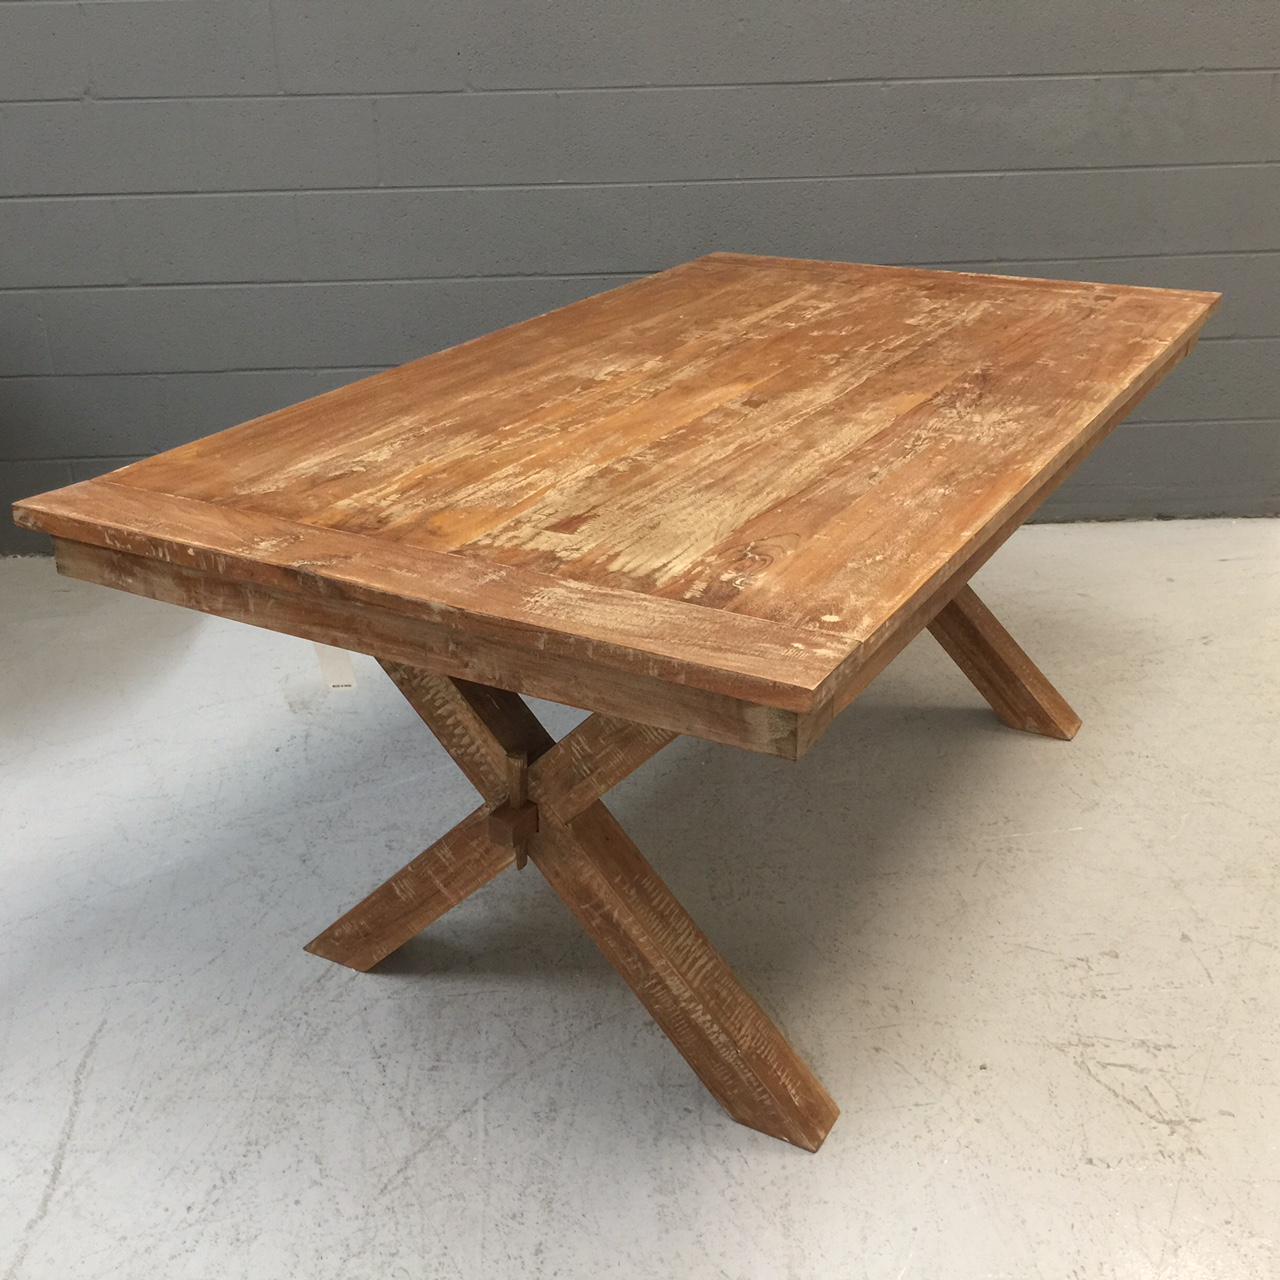 Cross leg dining table nadeau nashville cross leg dining table watchthetrailerfo